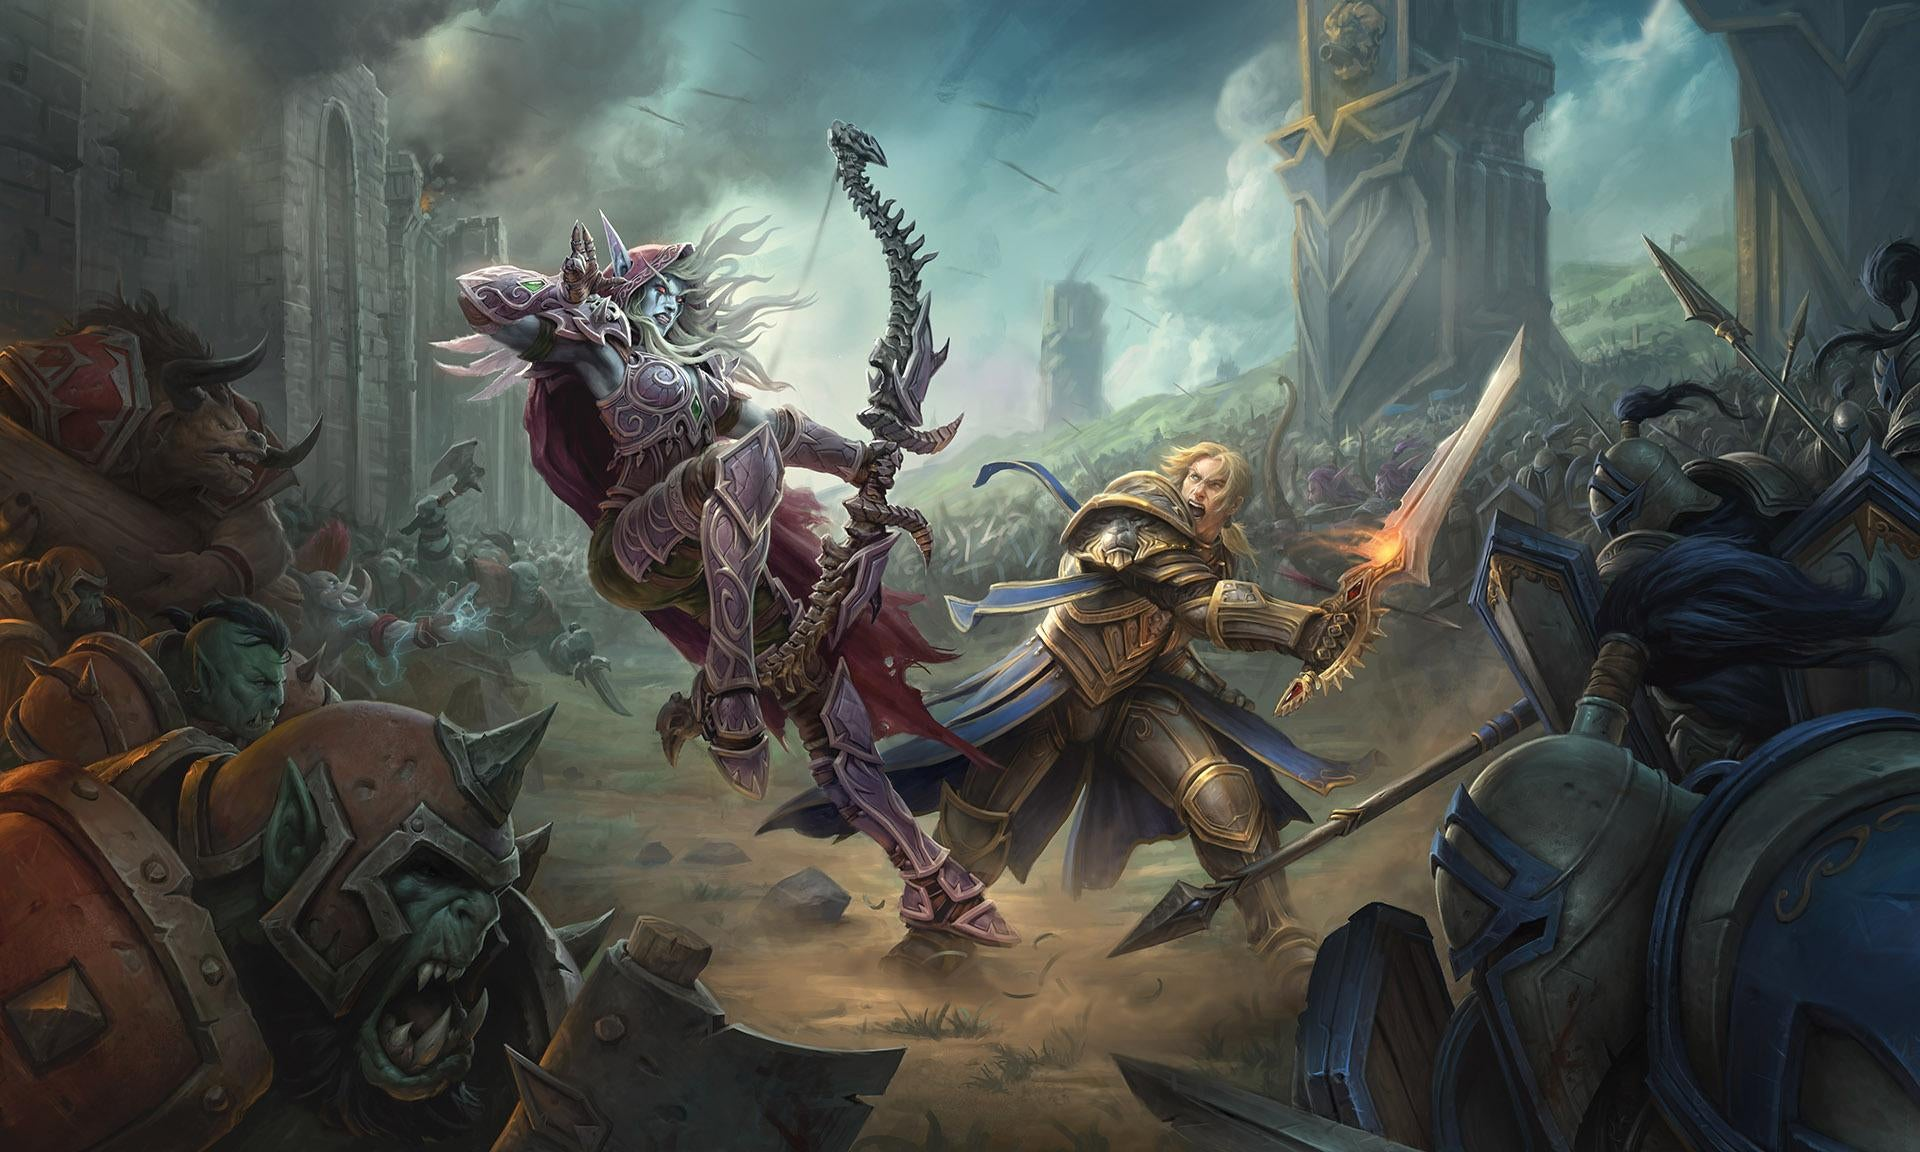 Art from WOW for Pay to Play MMORPG for PC List